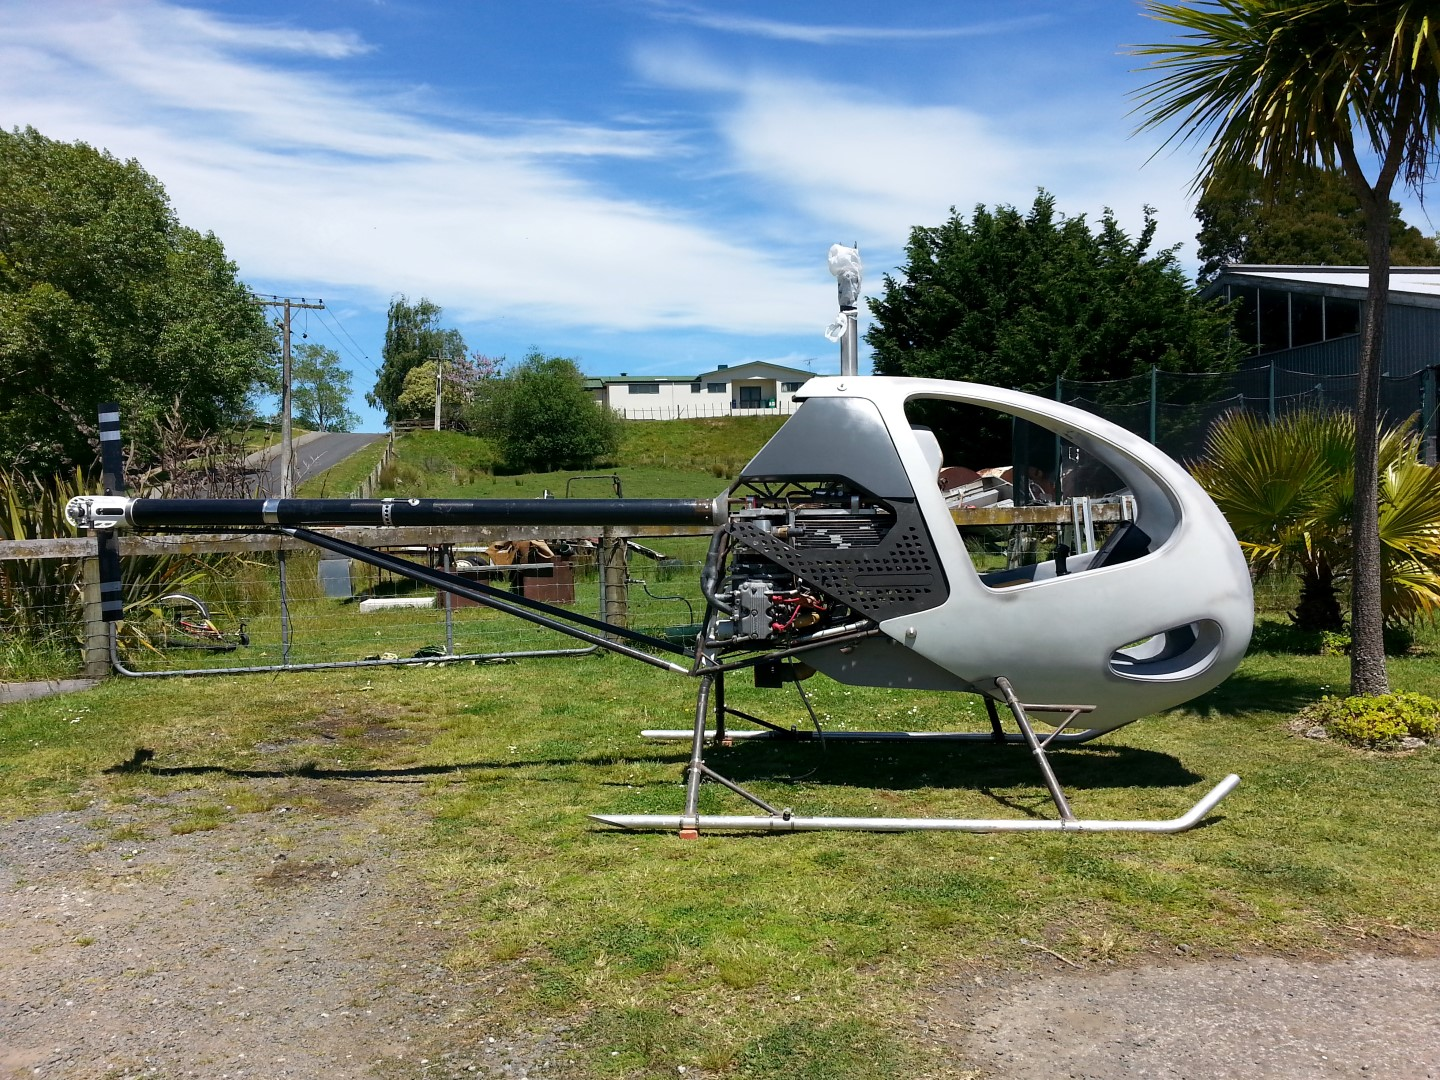 <h5>BlowFly Subaru helicopter side view </h5><p>BlowFly Subaru helicopter side view in the beautiful New Zealand sun</p>